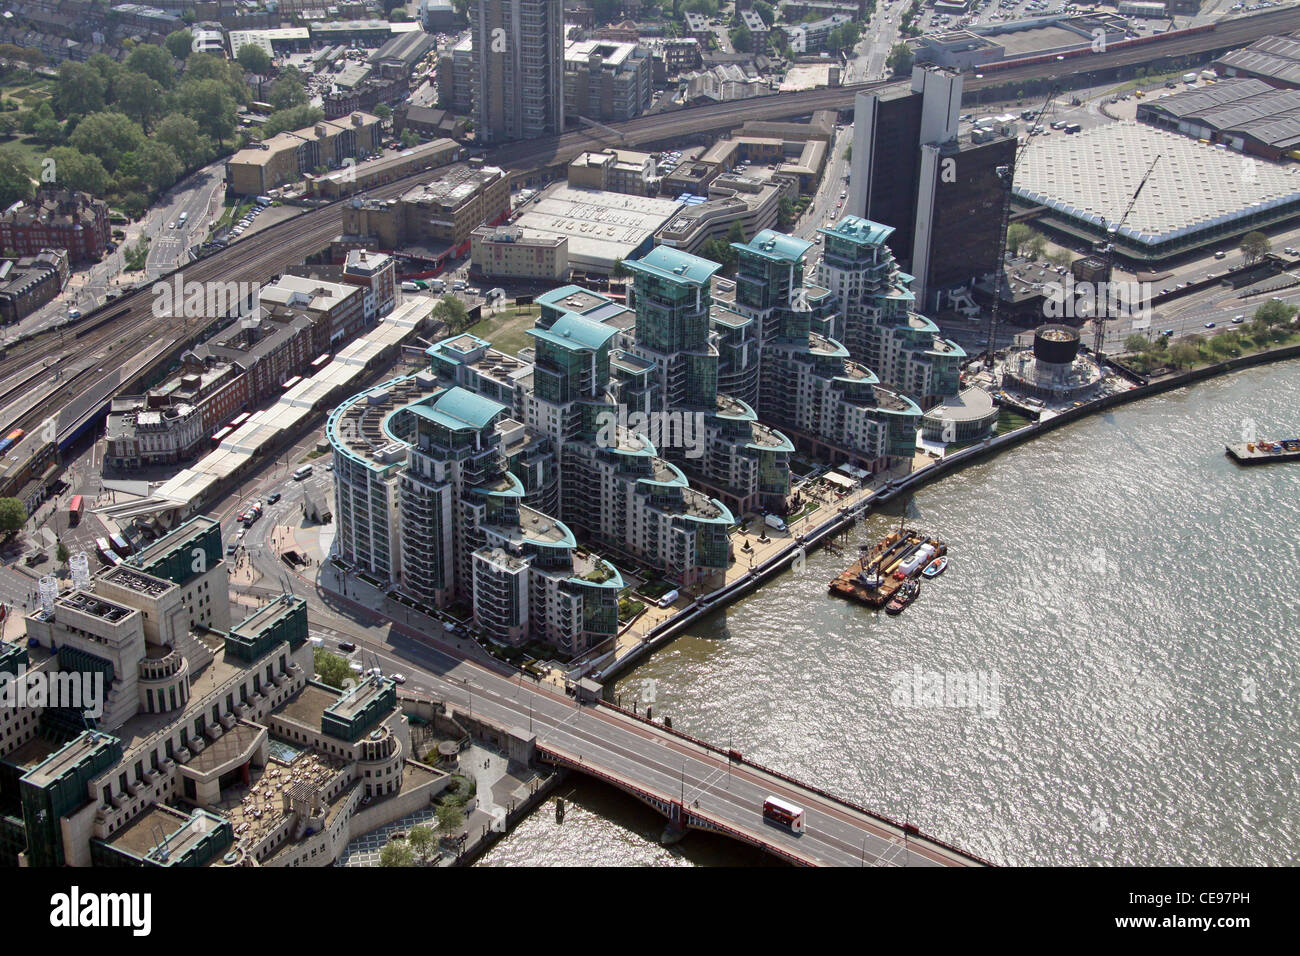 Aerial image of apartments at Vauxhall Cross, South bank of the Thames, London - Stock Image